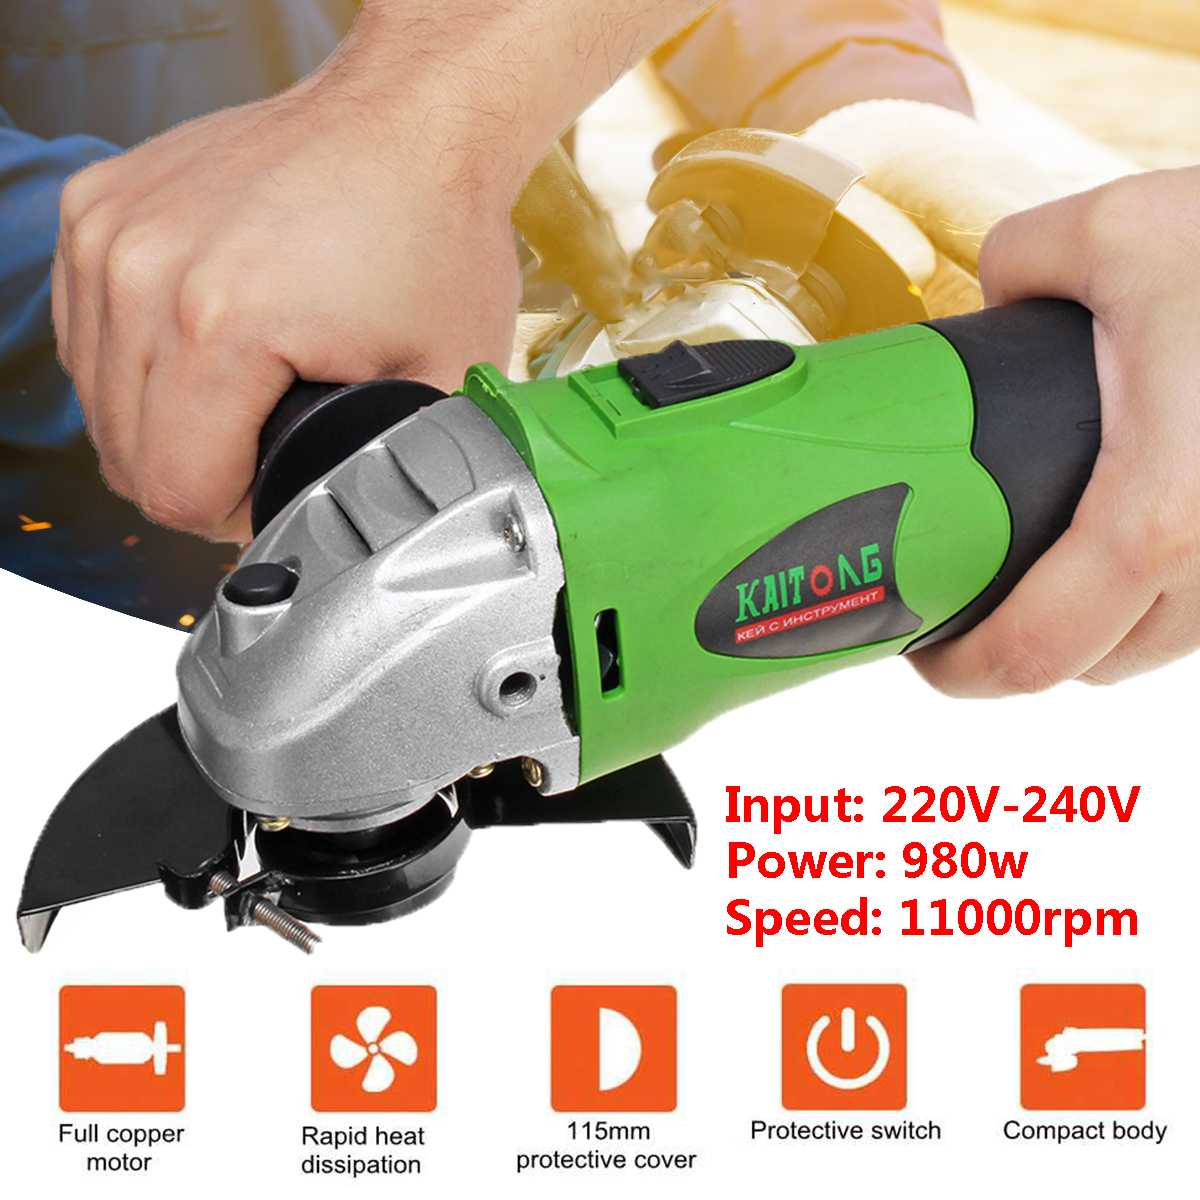 Metal Cutting Tool 980W Electric Angle Grinder 115 125mm Grinding Machine 11000RPM Adjustable Anti Slip EU PLug Powerful Protect